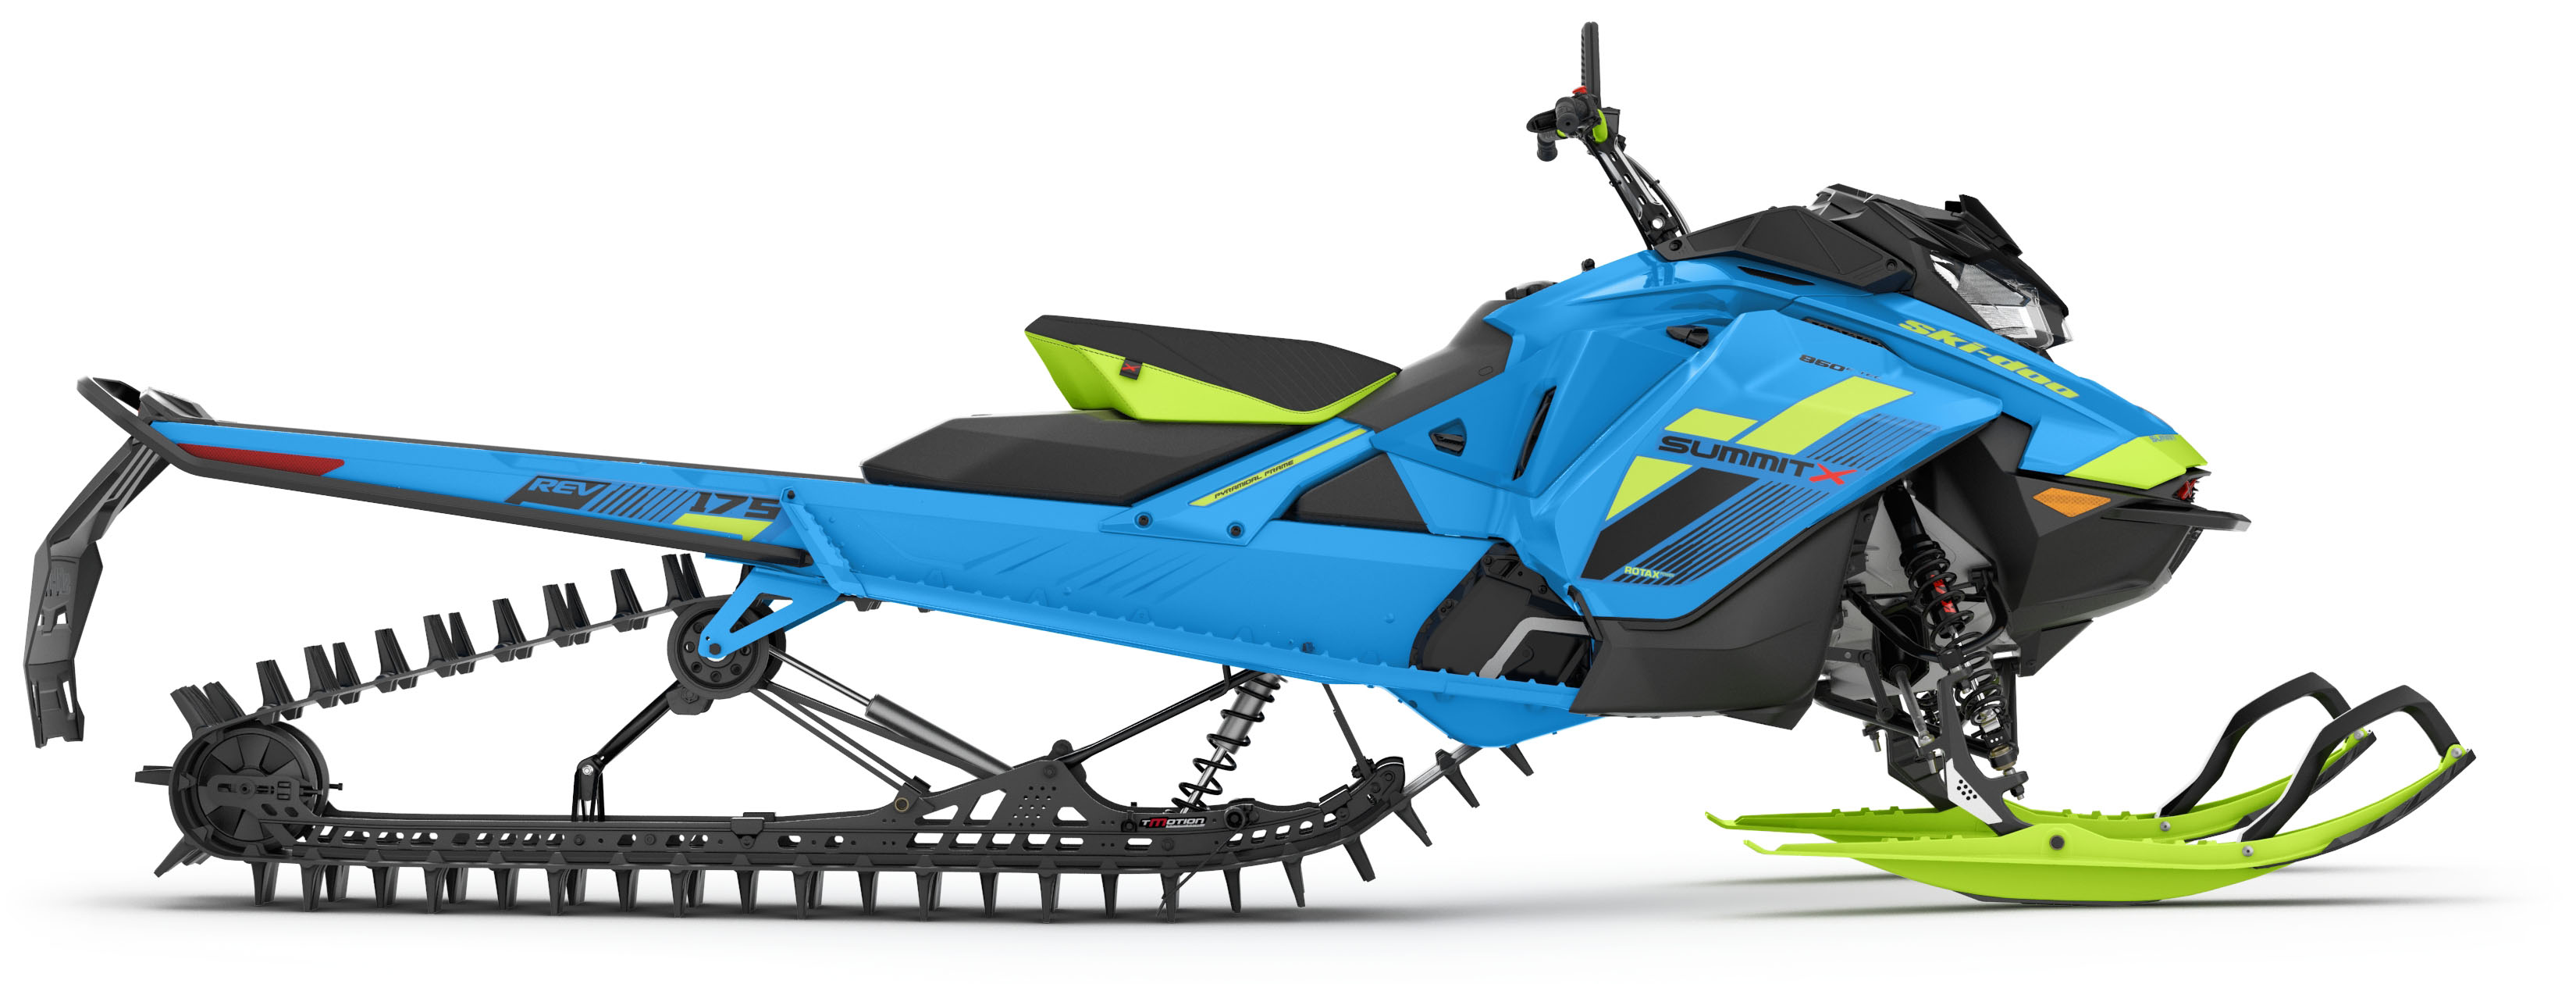 The 2018 Ski Doo Summit X 175 Is A New Variation For This Year